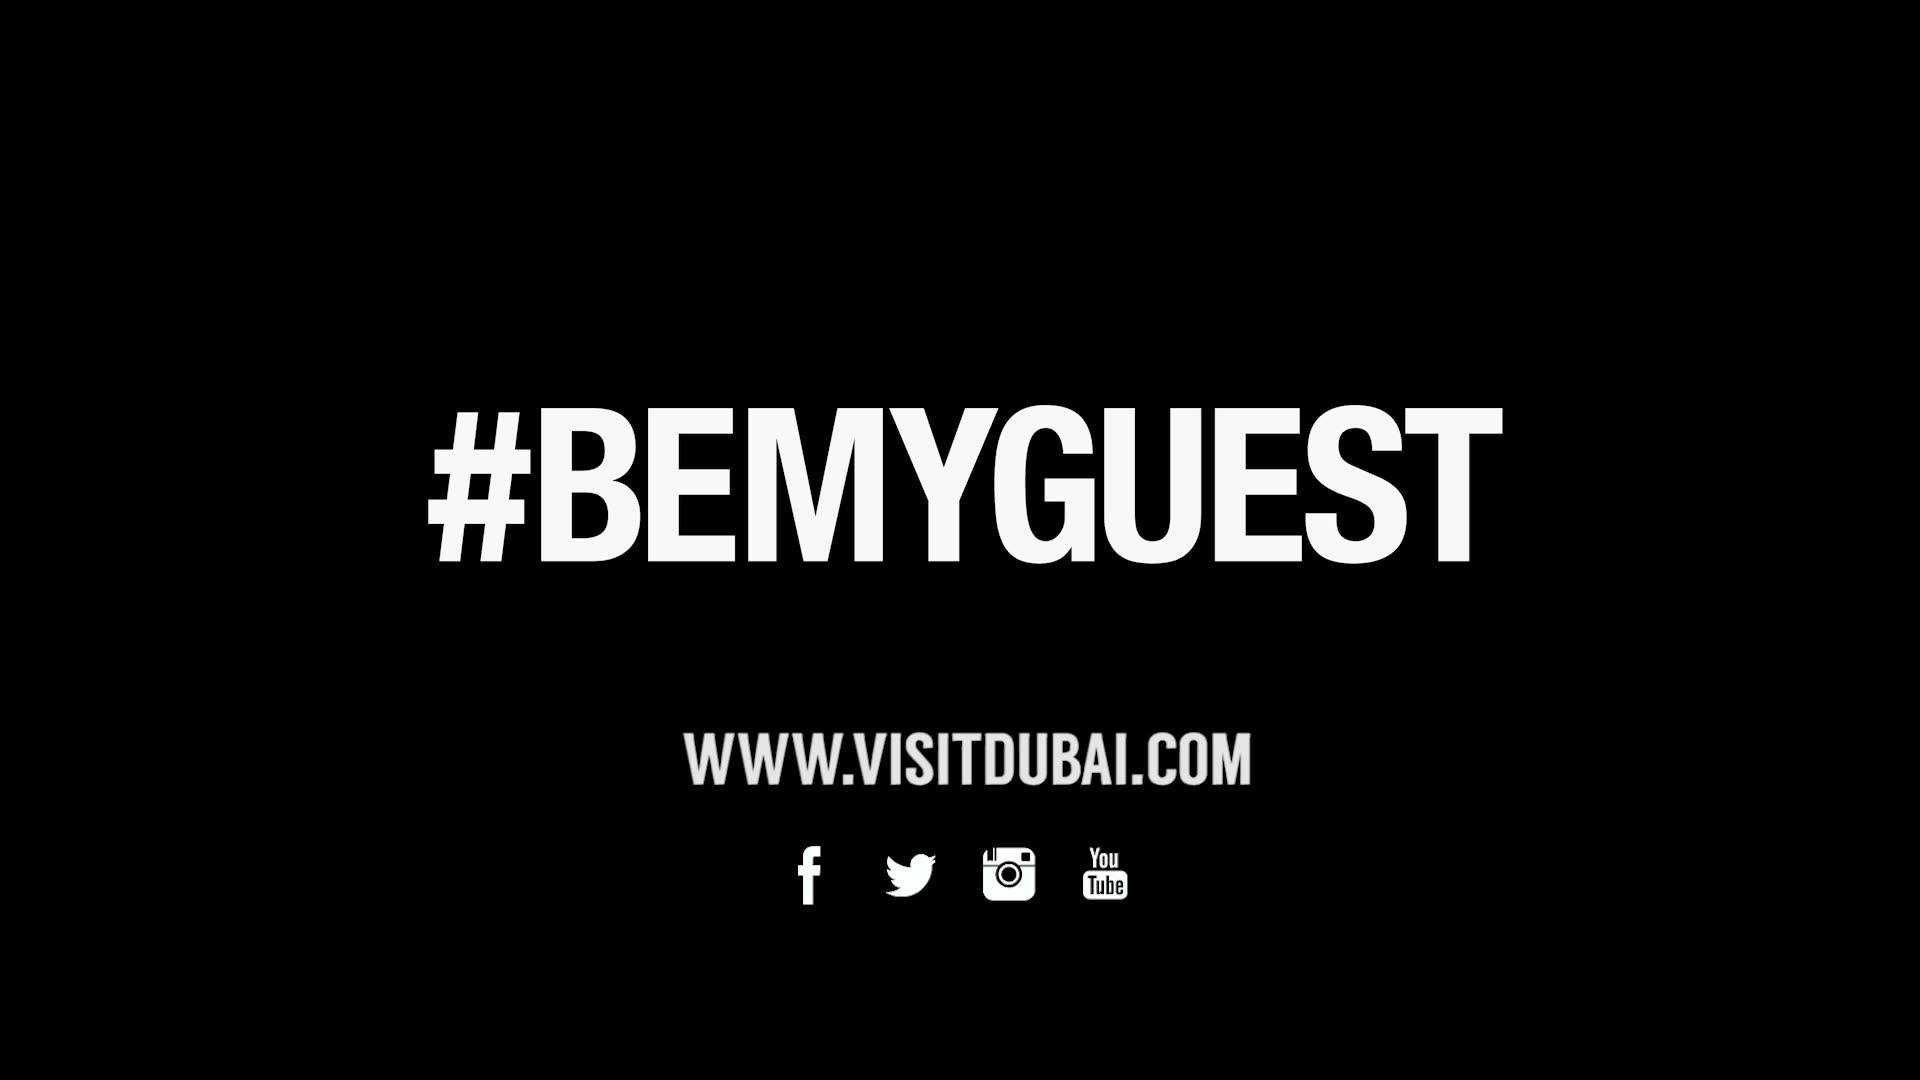 Throwback to last year's #BeMyGuest campaign with Visit Dubai, stay tuned for something new coming this week.  http://bit.ly/2F5bNqt